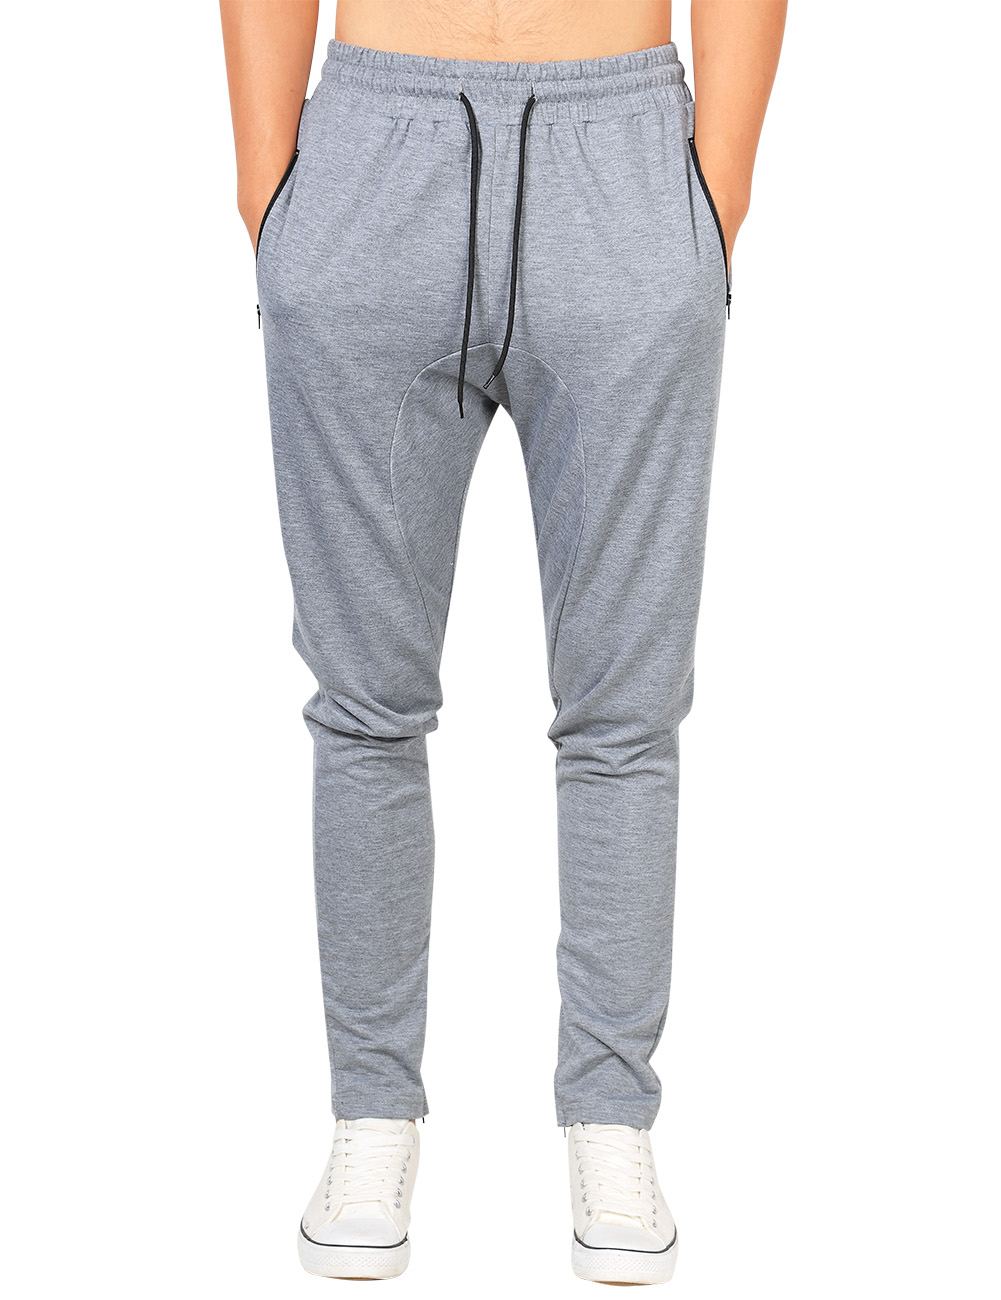 Yong Horse Men's Casual Jogger Pants Fitness Workout Gym Running Sweatpants Light Grey_L